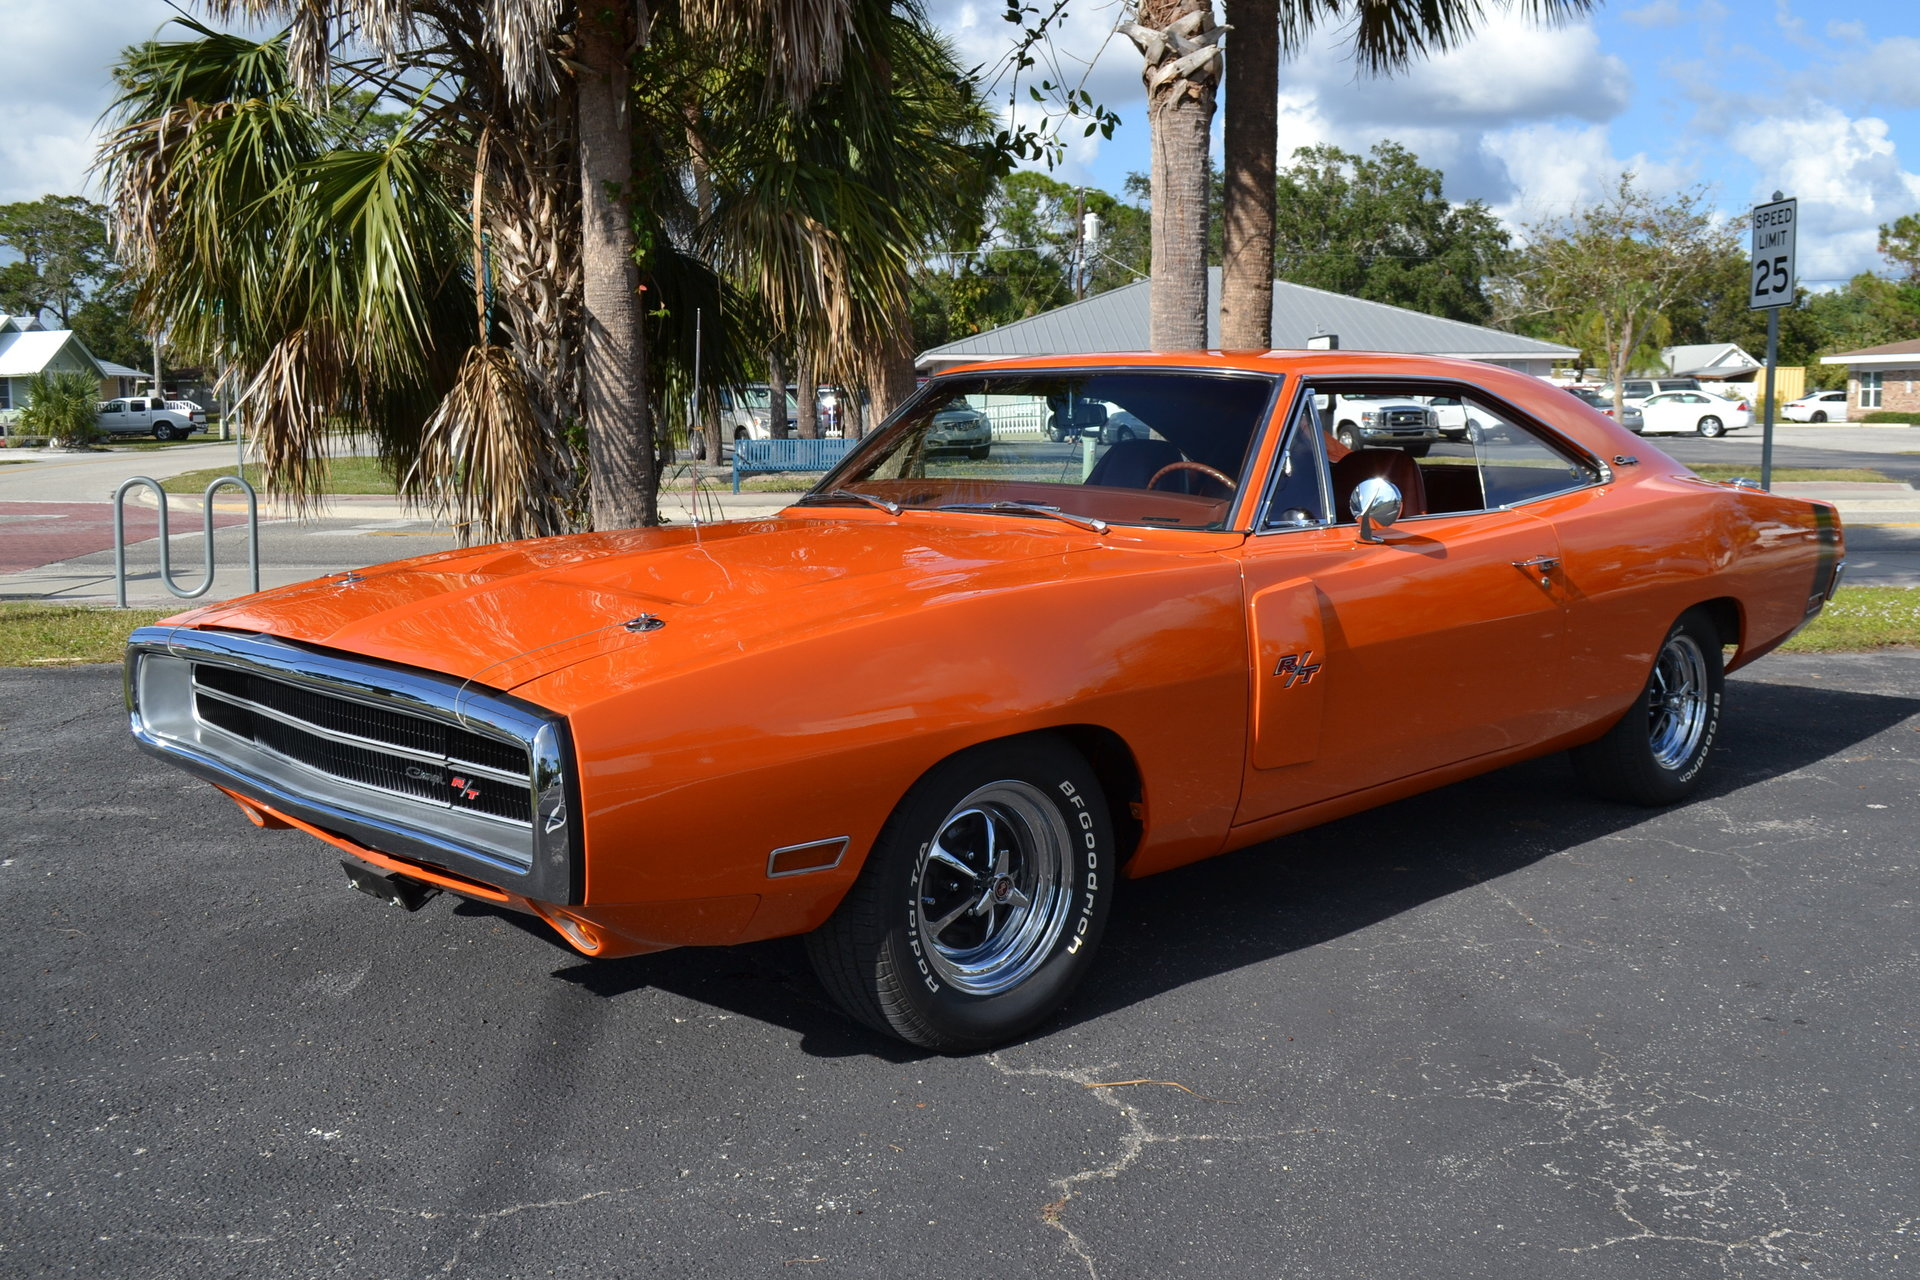 1970 dodge charger my classic garage. Black Bedroom Furniture Sets. Home Design Ideas